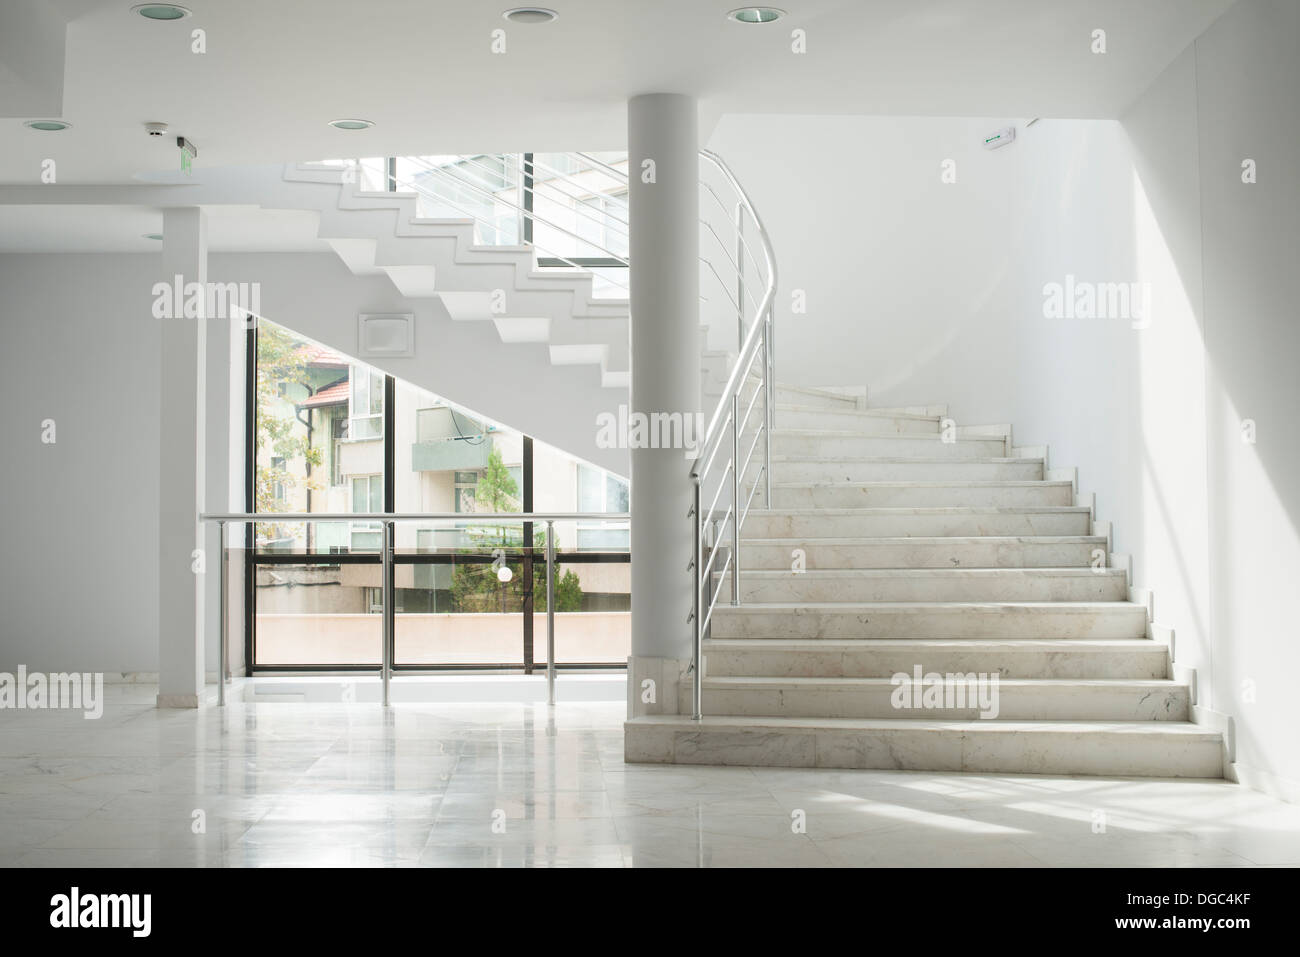 Interior of a building with white color walls. Flight of stairs - Stock Image